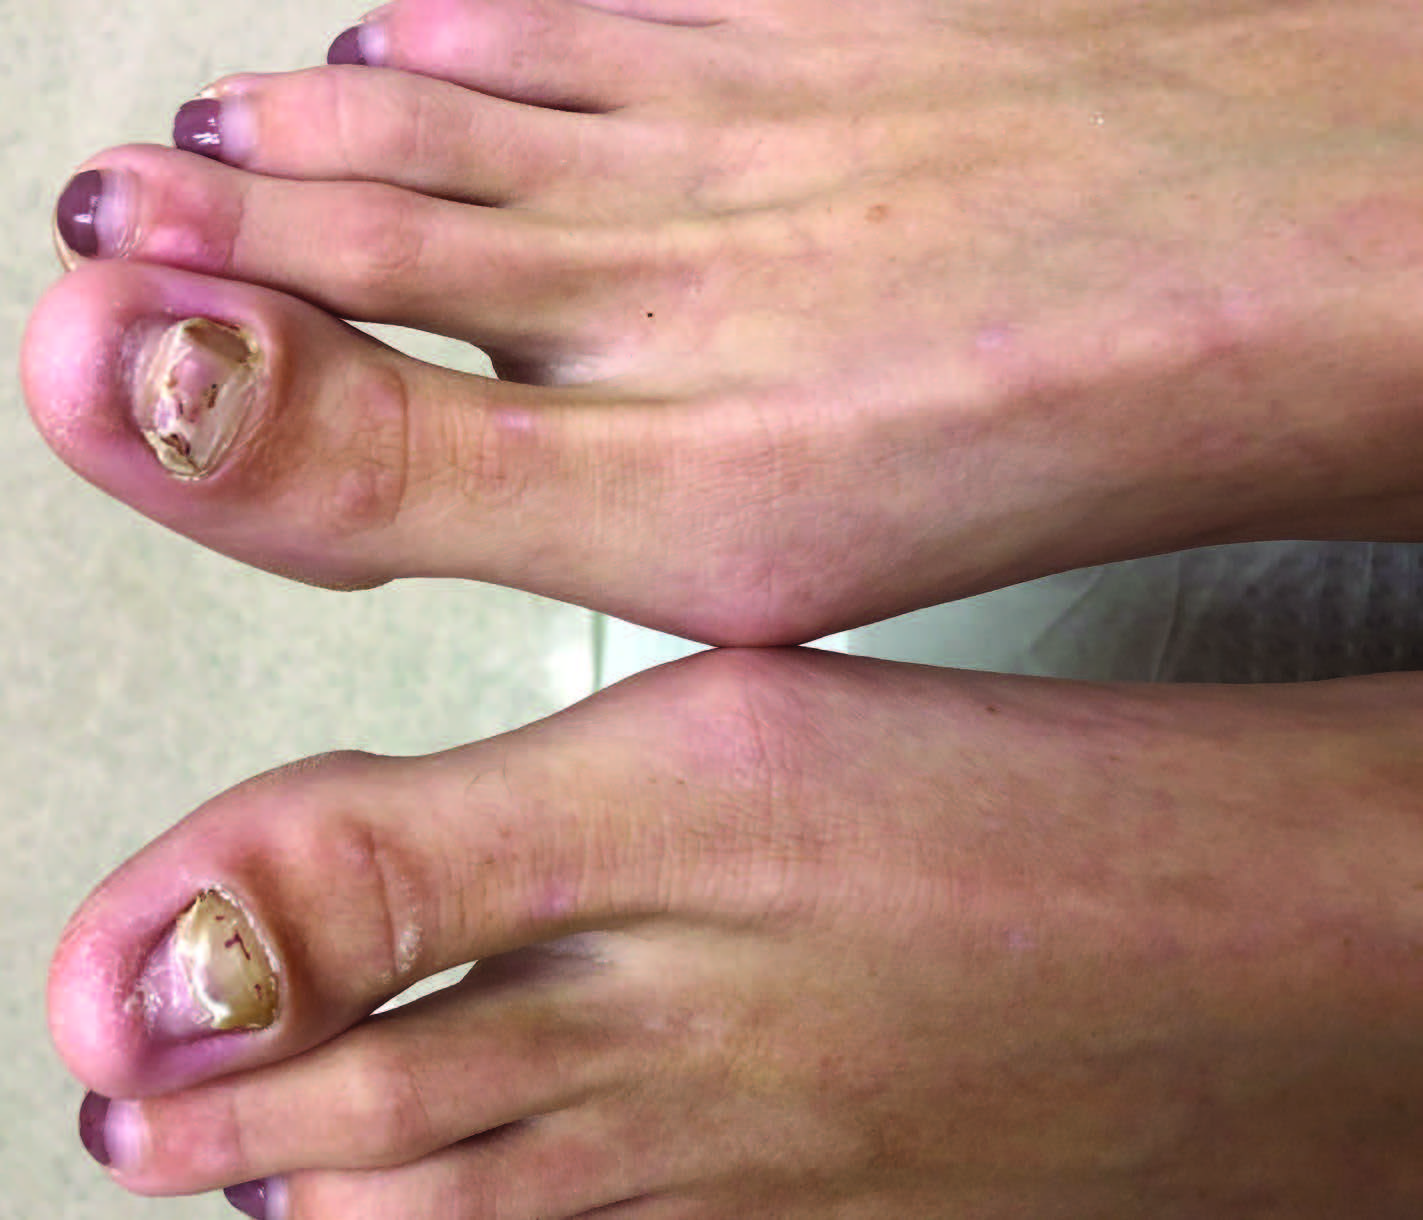 Here one can see disappearing nail bed of the hallux bilaterally. Differentiating between onychomycotic and true onycholytic nail disorders is difficult for even the most seasoned practitioners. This can create issues when it comes to proper diagnosis and treatment plans.